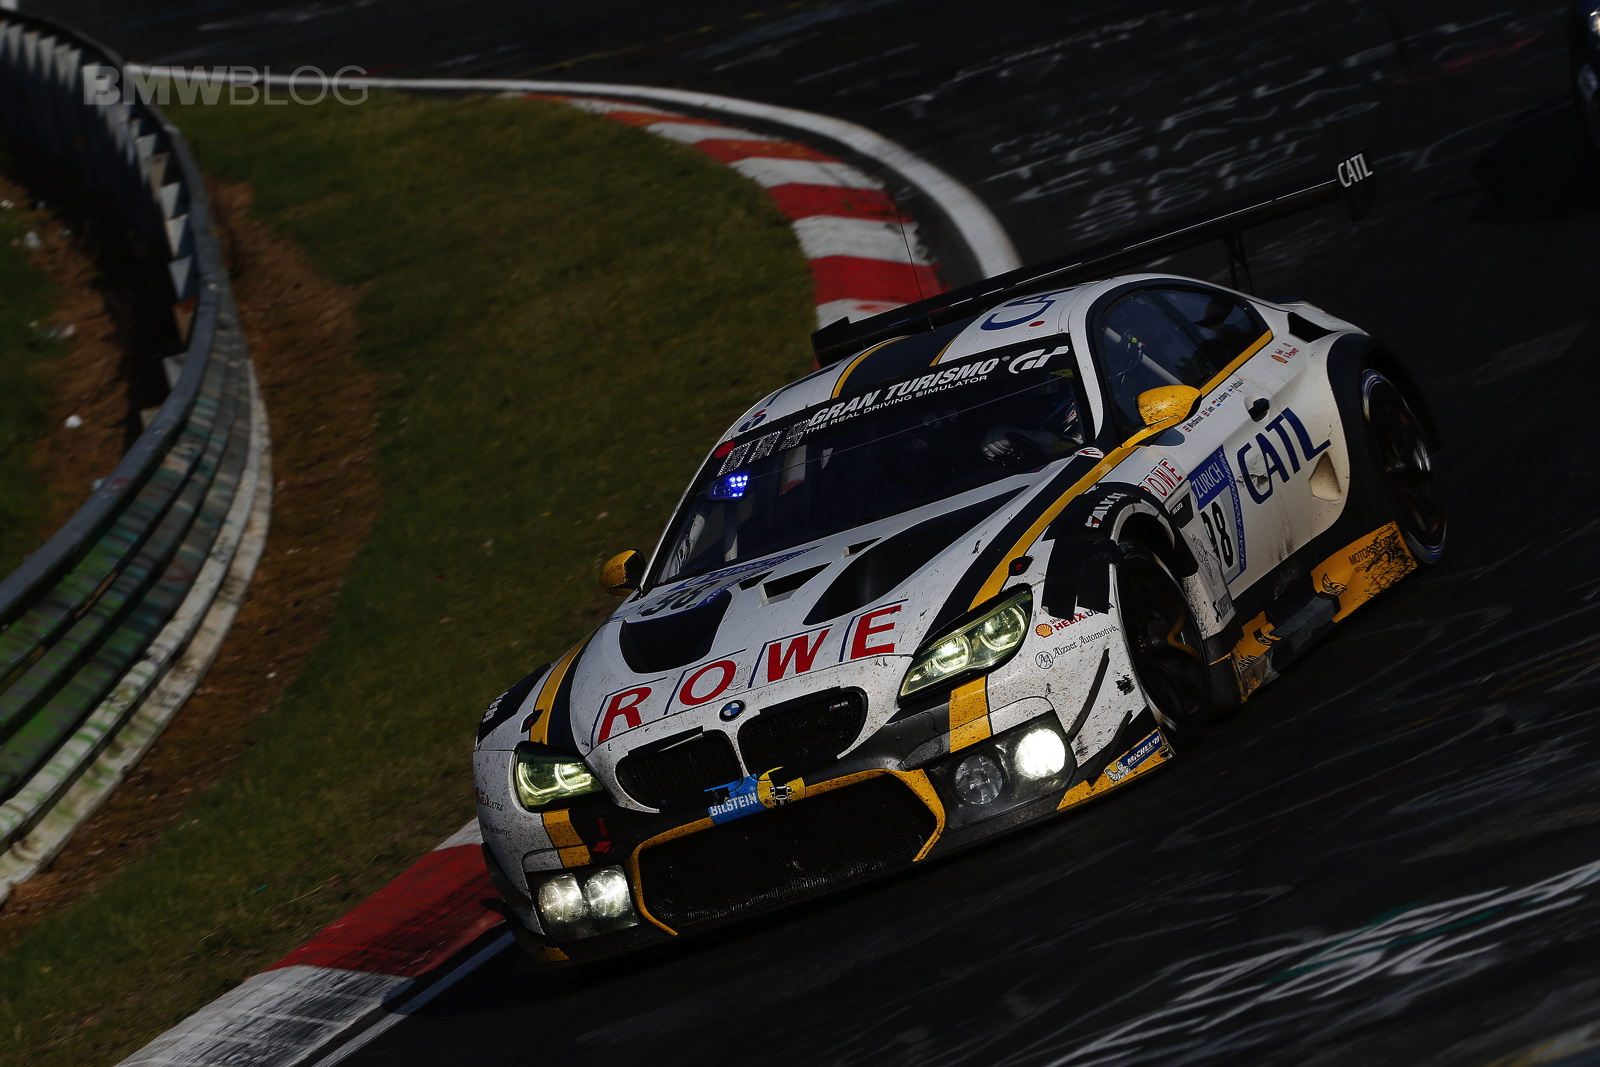 ROWE Racing secures second place at the Nürburgring with ...